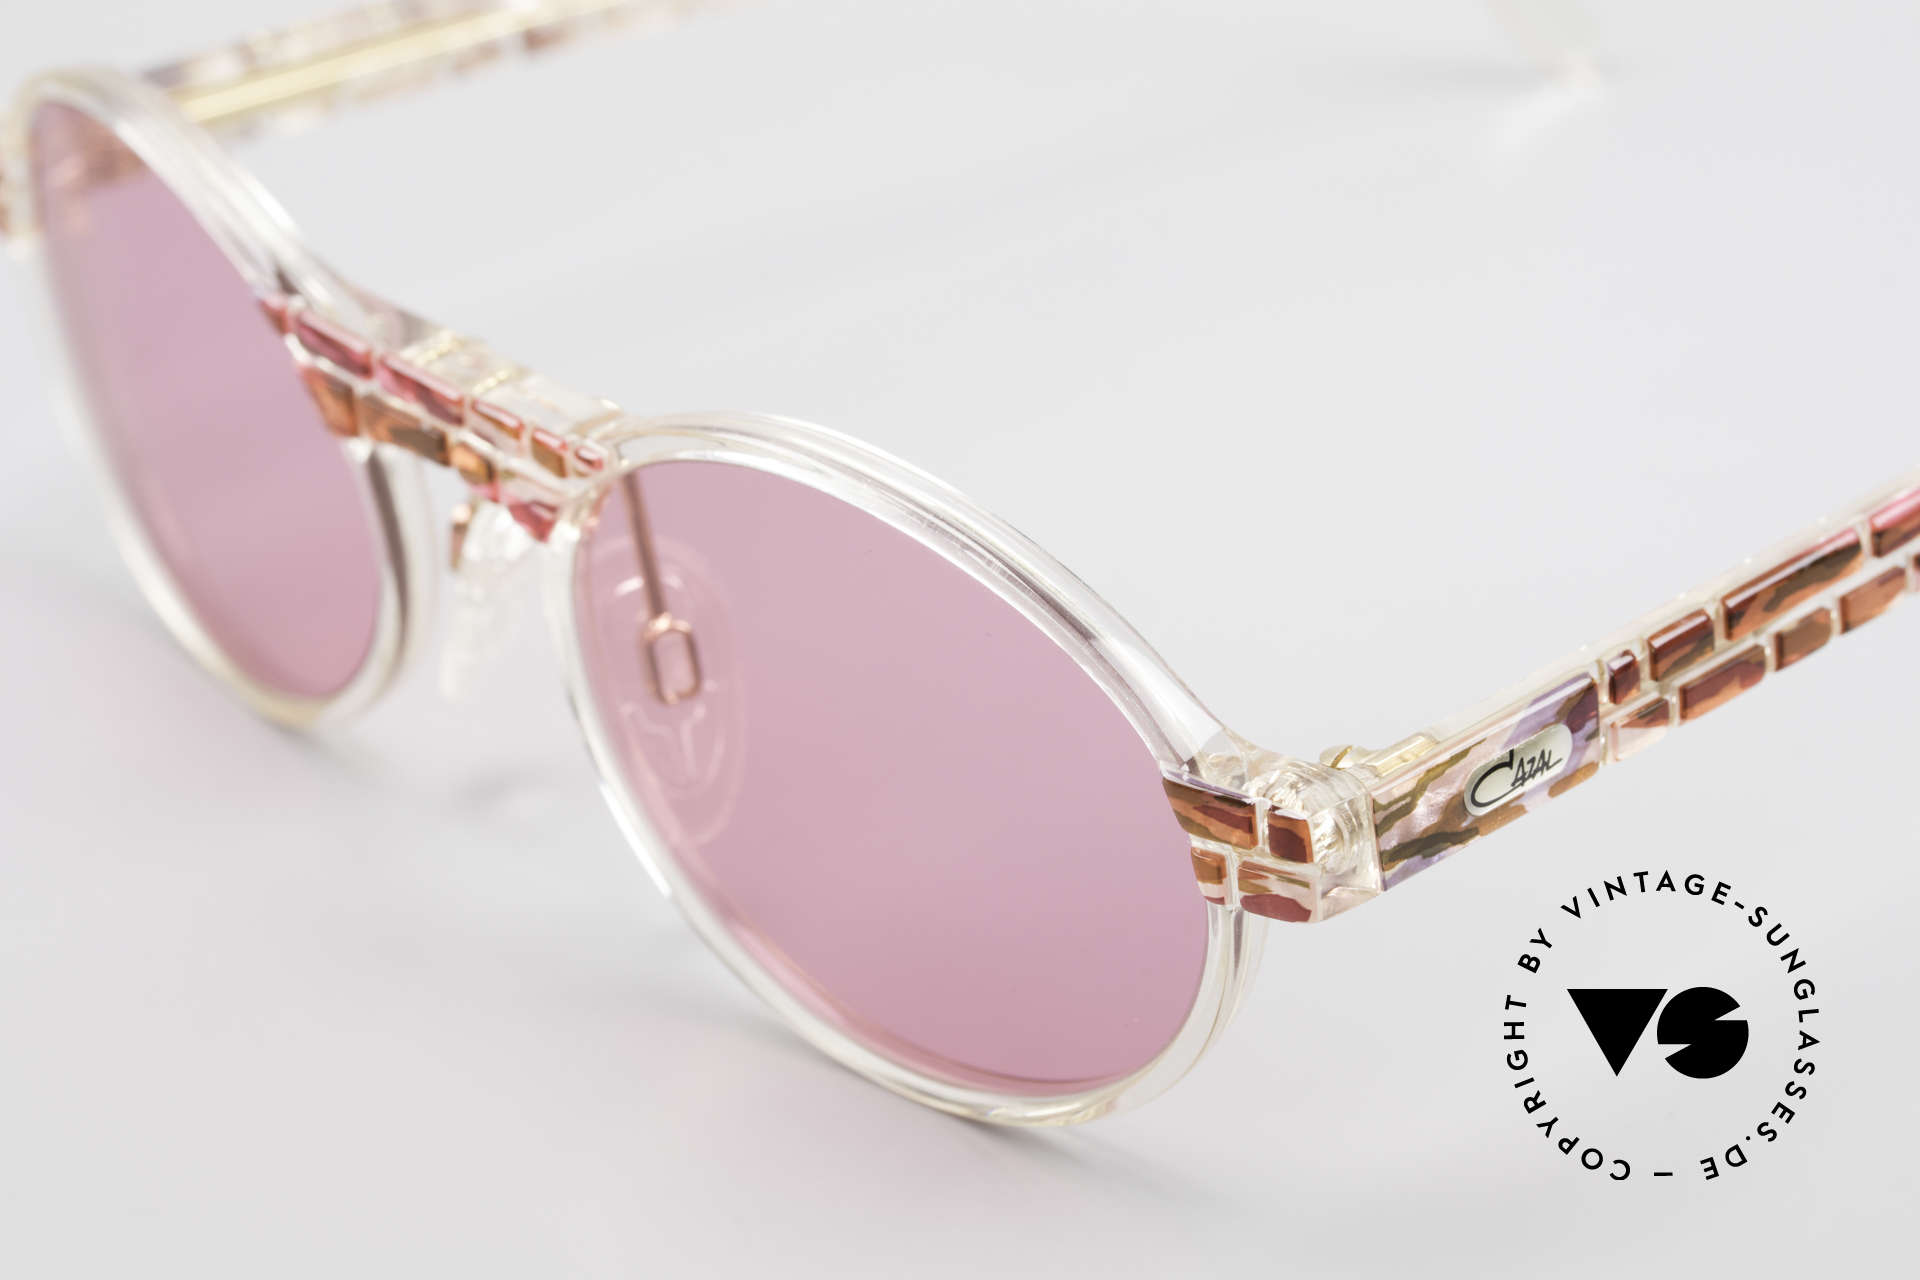 Cazal 510 Oval Pink Vintage Sunglasses, fantastic combination of shape, colors and materials, Made for Women